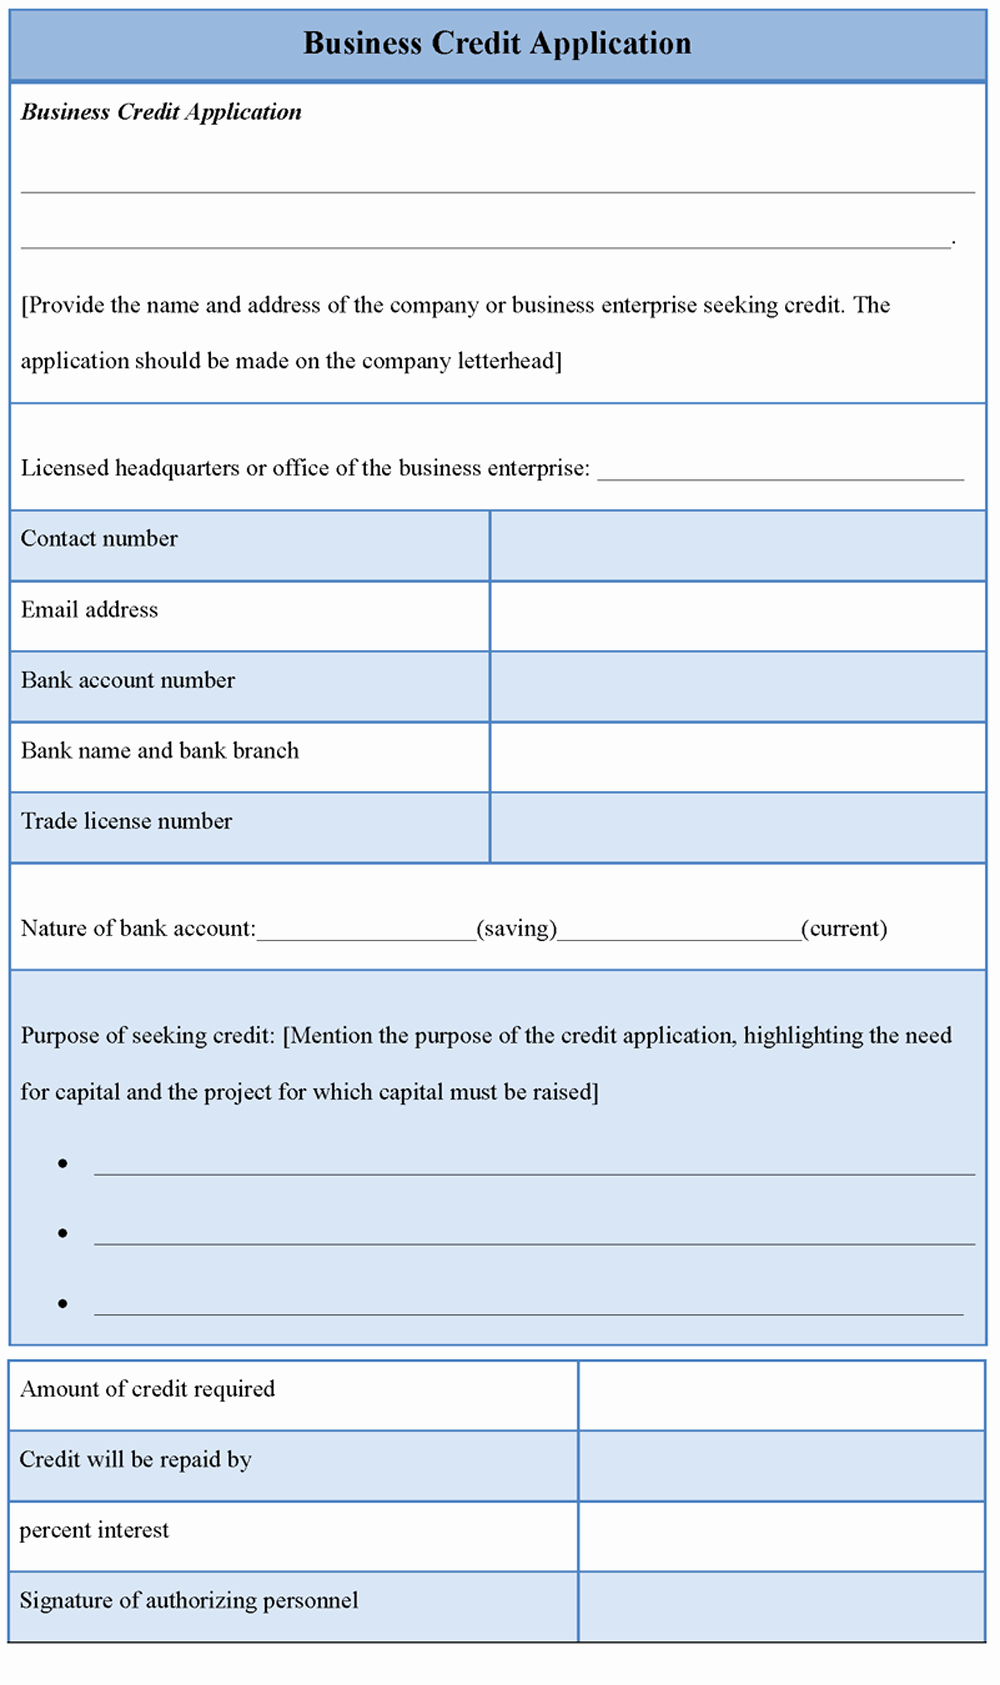 Business Credit Application Template Best Of Application Template for Business Credit Sample Of